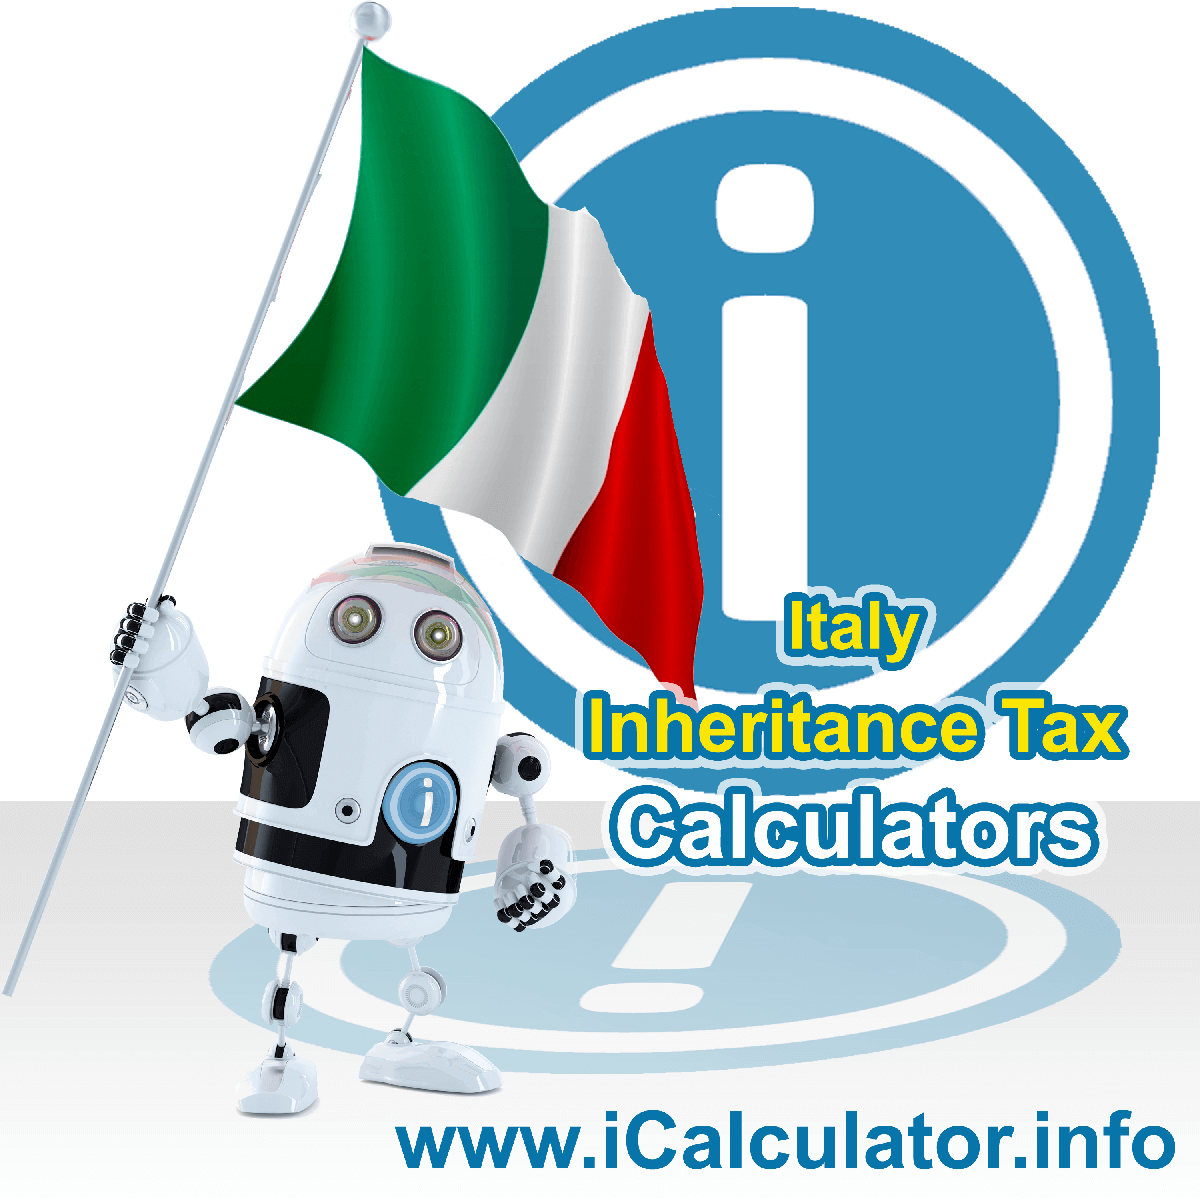 Italy Inheritance Tax Calculator. This image shows the Italy flag and information relating to the inheritance tax rate formula used for calculating Inheritance Tax in Italy using the Italy Inheritance Tax Calculator in 2021